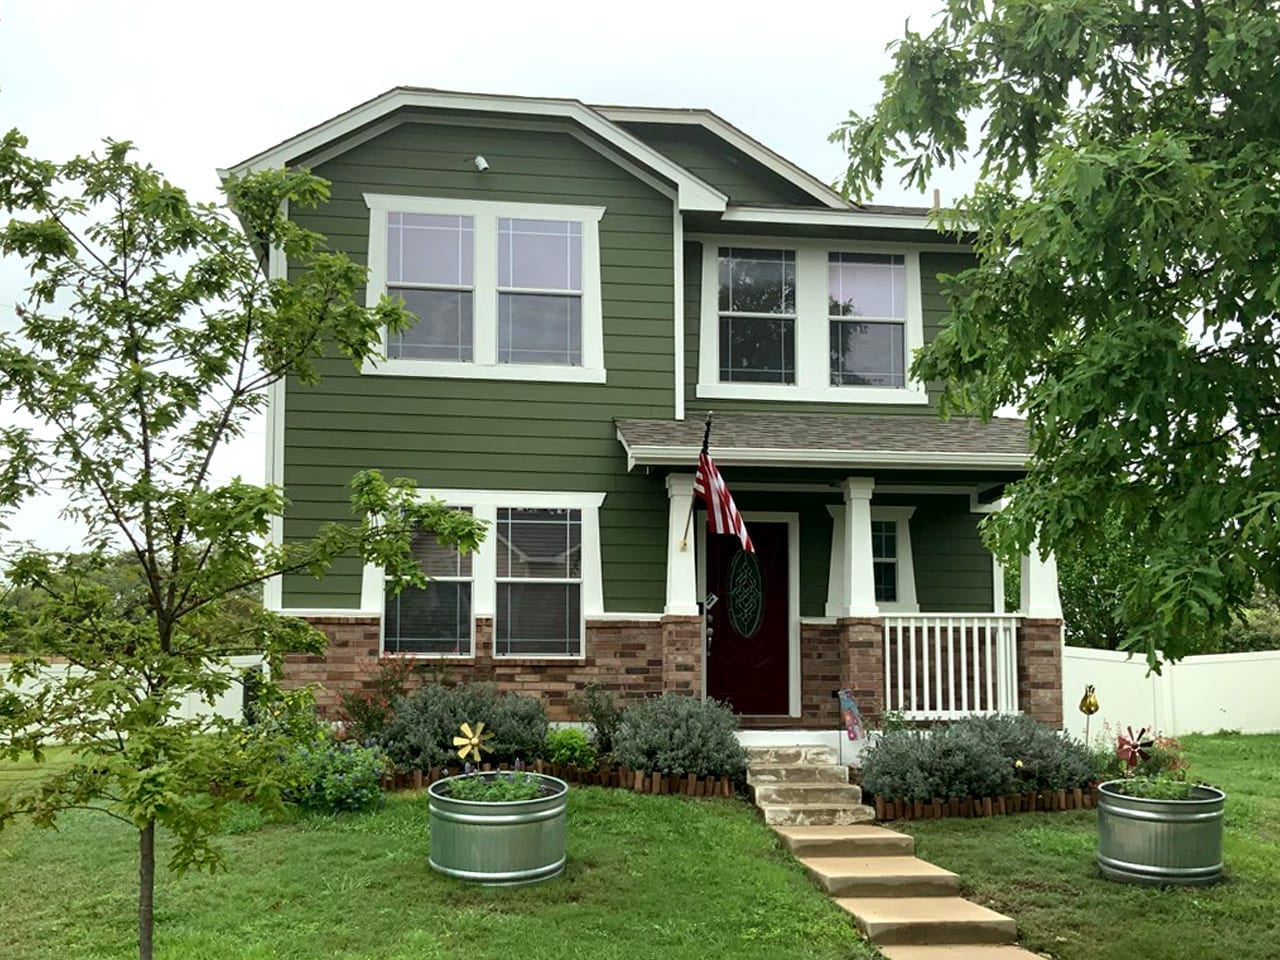 Green Exterior House Paint front